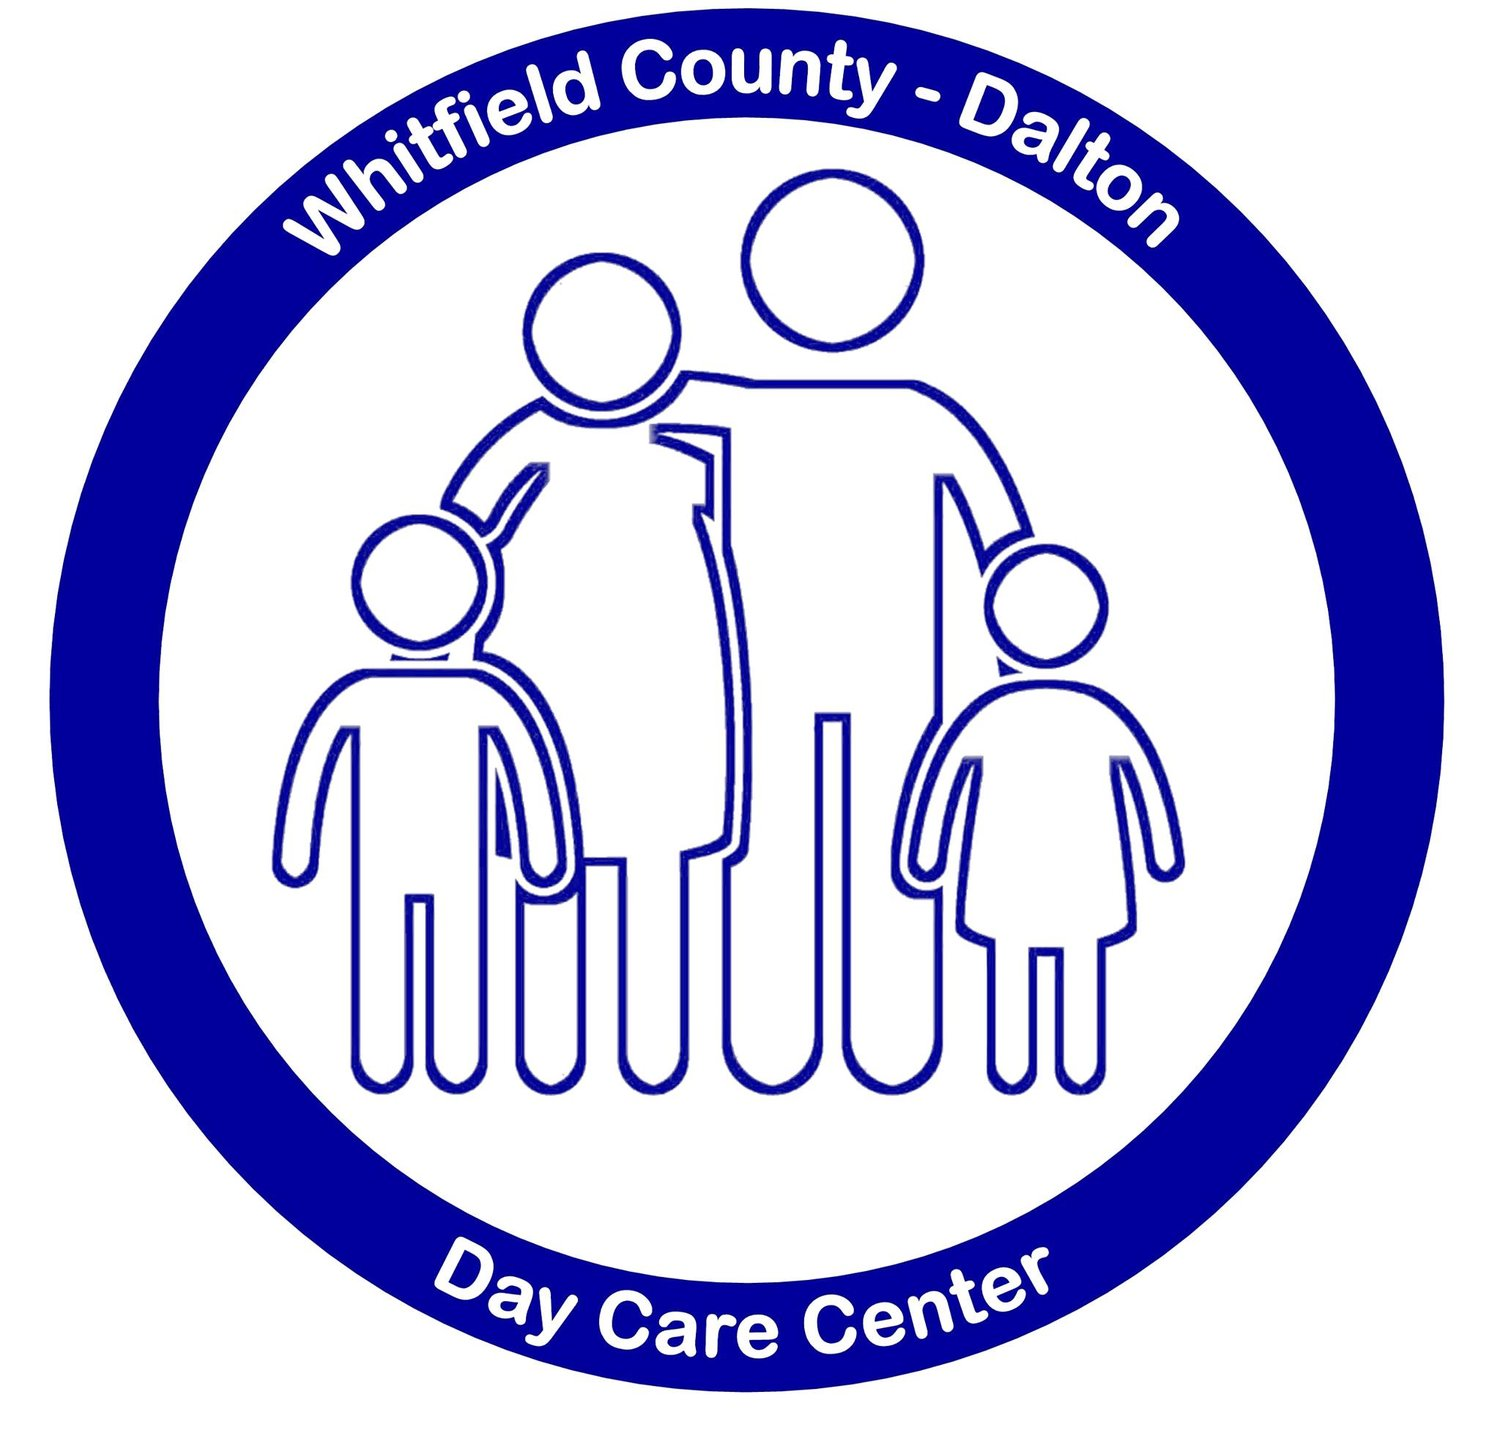 Whitfield County-Dalton Day Care Center